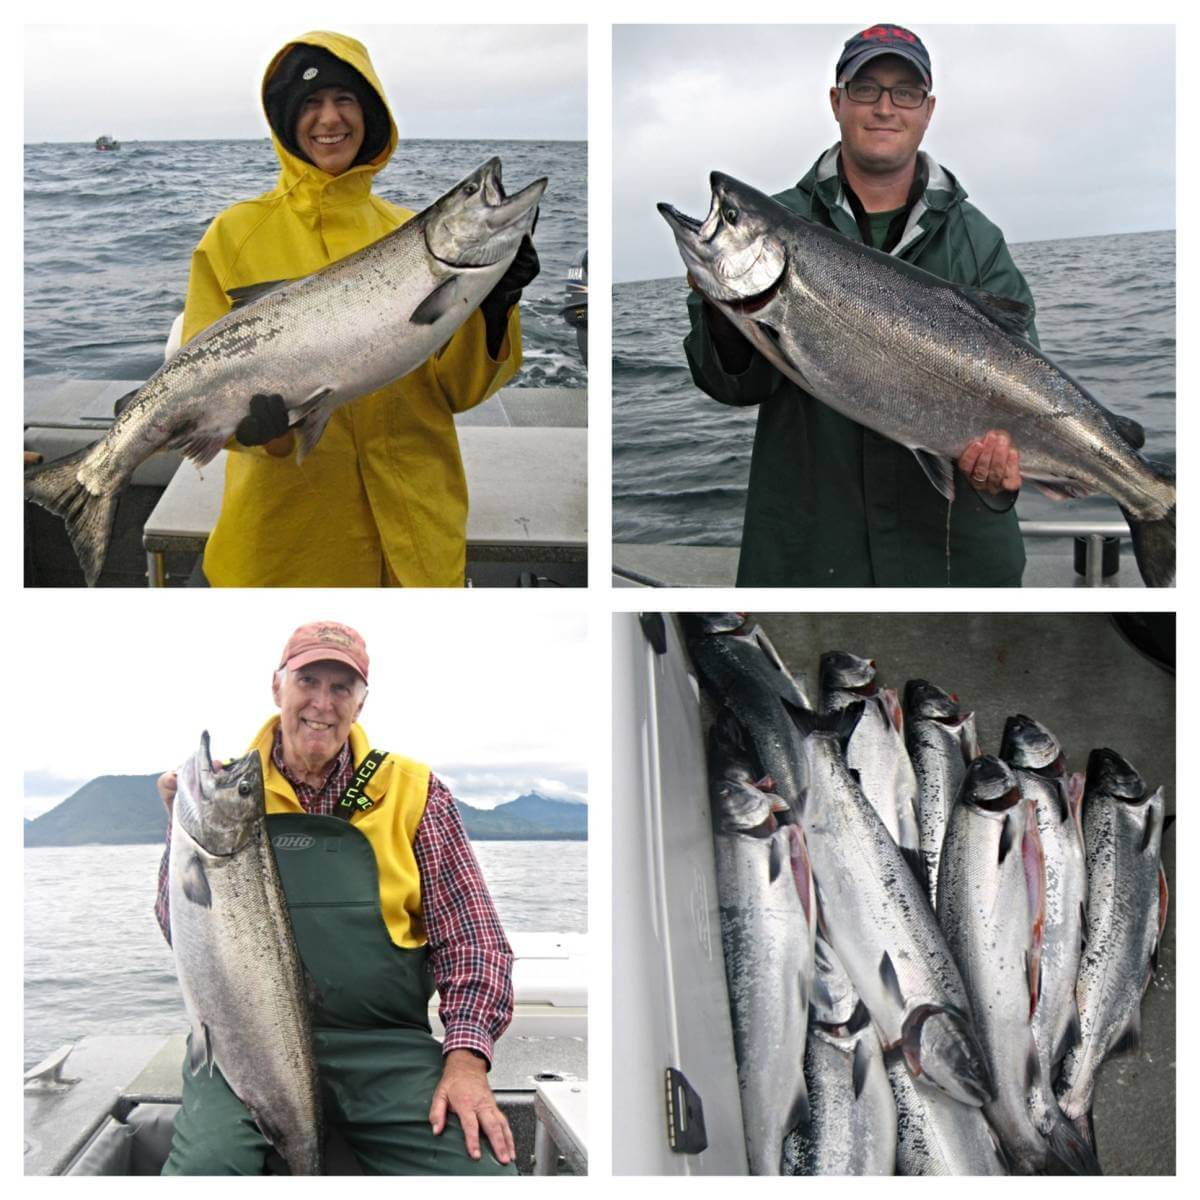 Sitka fishing report 8 4 glassburn party angling unlimited for Sitka fishing report